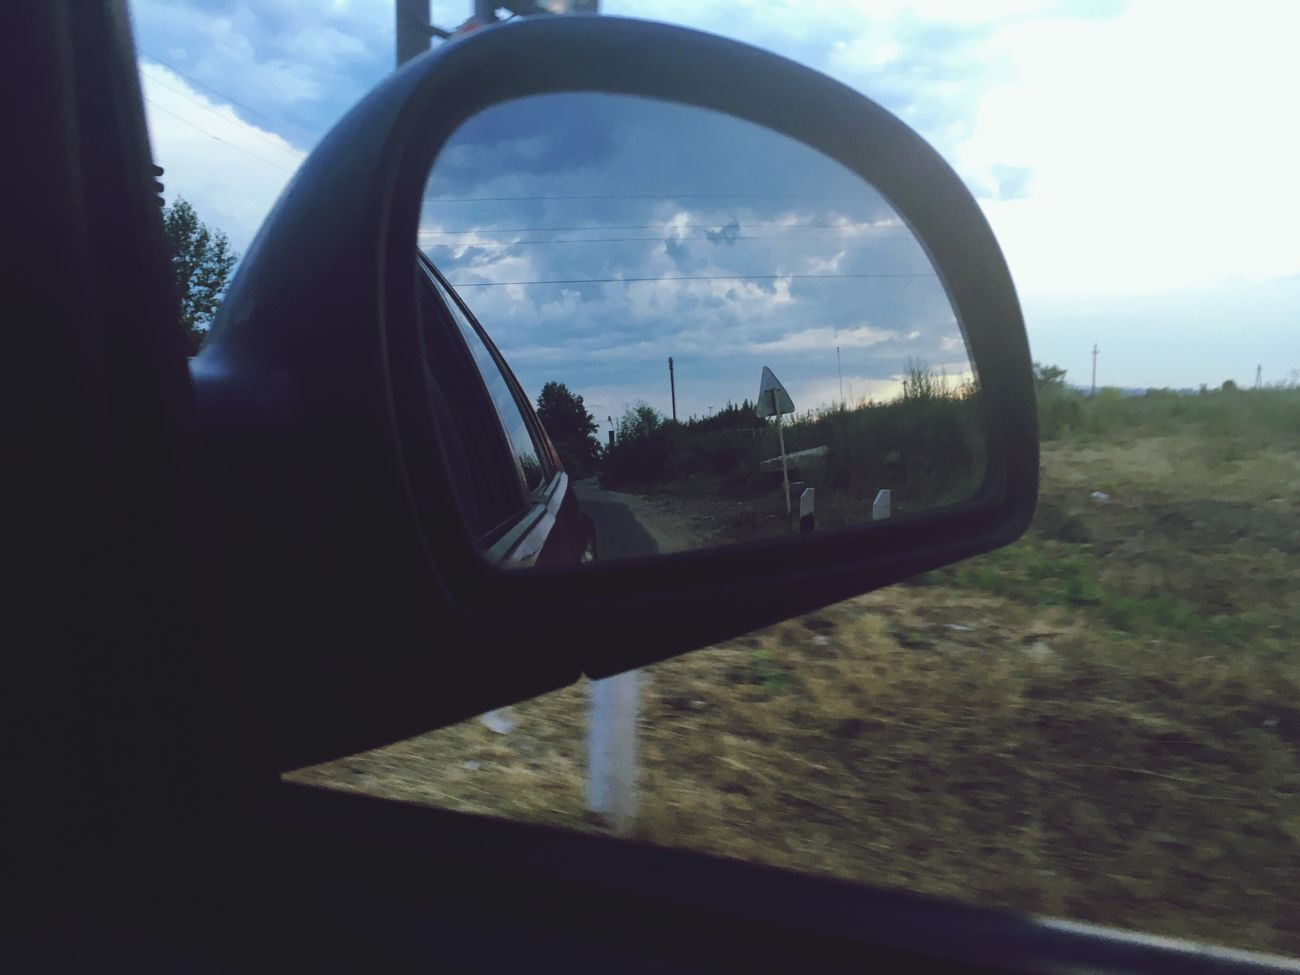 Car Transportation Land Vehicle Mode Of Transport Vehicle Interior Tree Side-view Mirror Reflection Sky Day Road No People Nature Steering Wheel Close-up Vehicle Mirror Outdoors